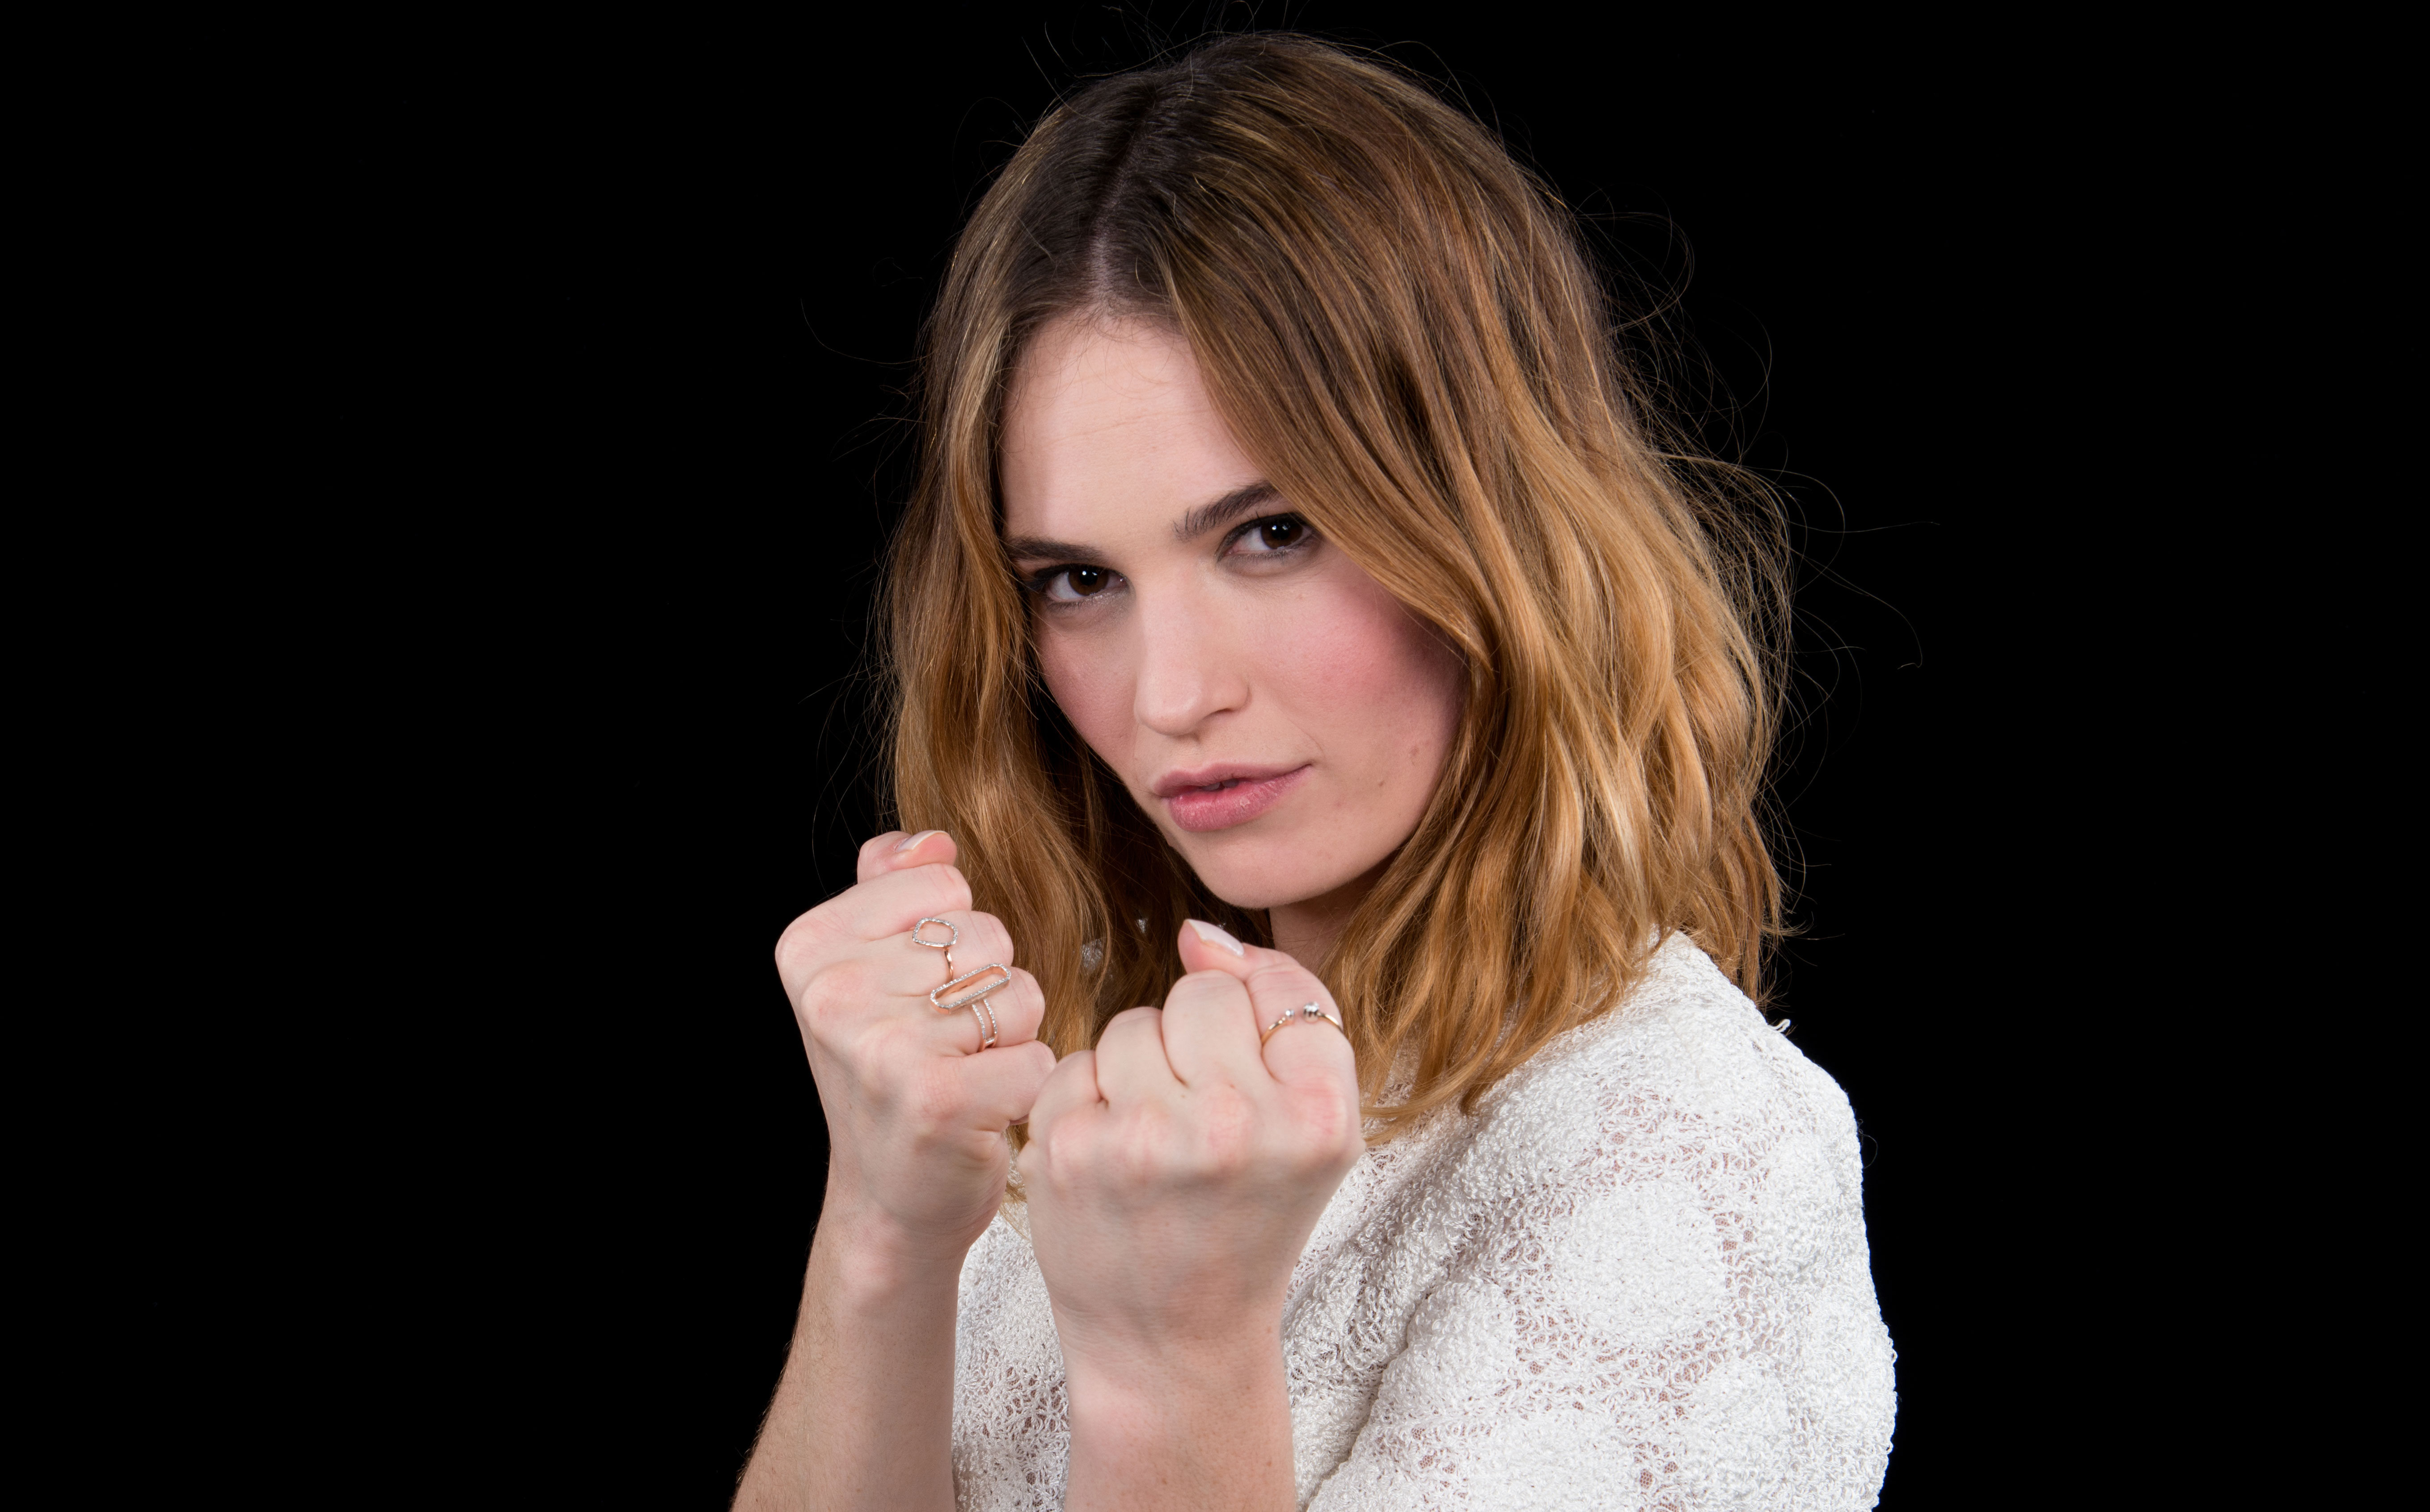 Lily James Image: Lily James Loved The Fighting & Horror In 'Pride And